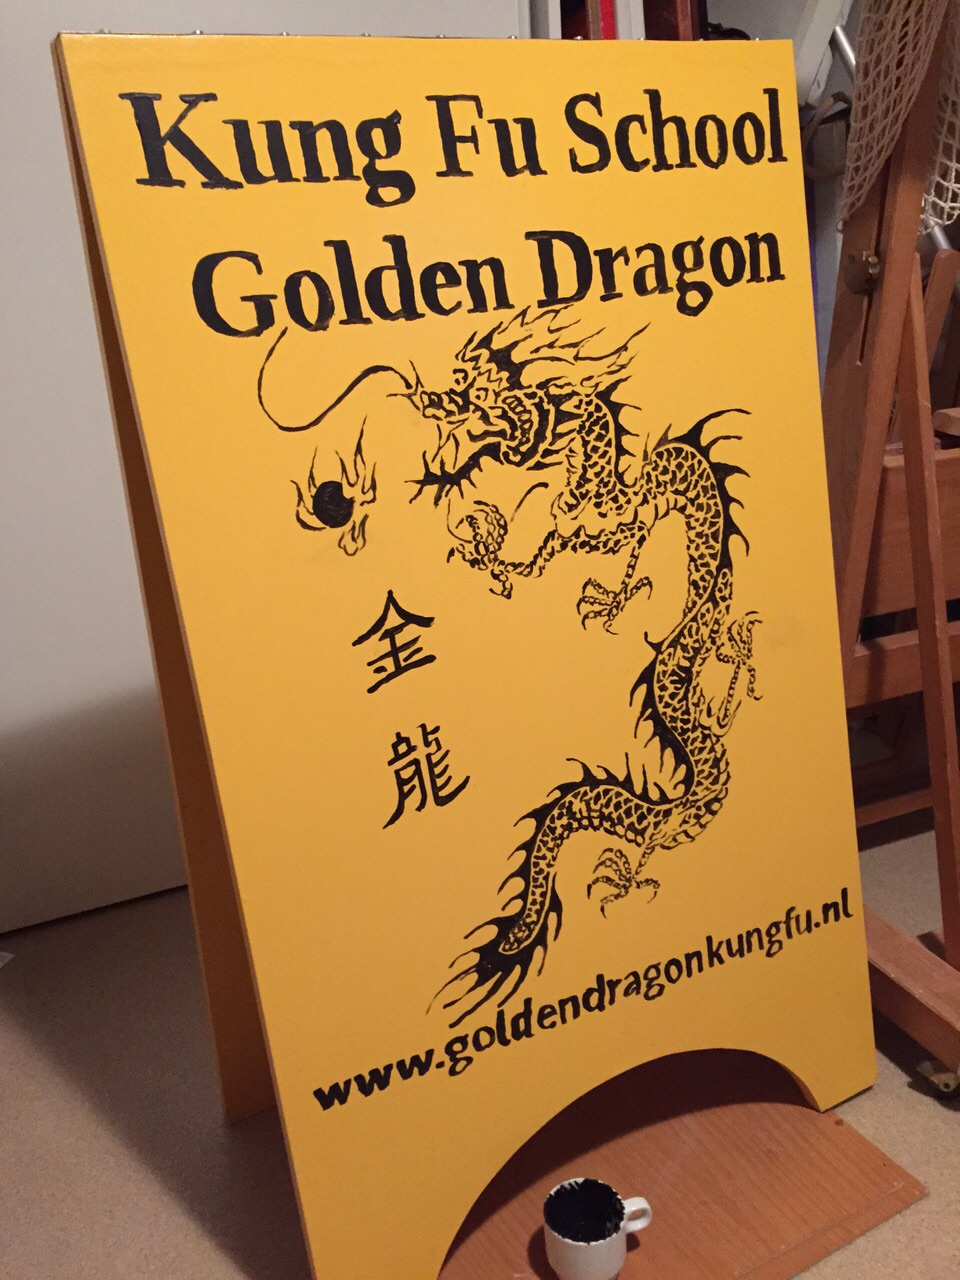 Golden Dragon bord